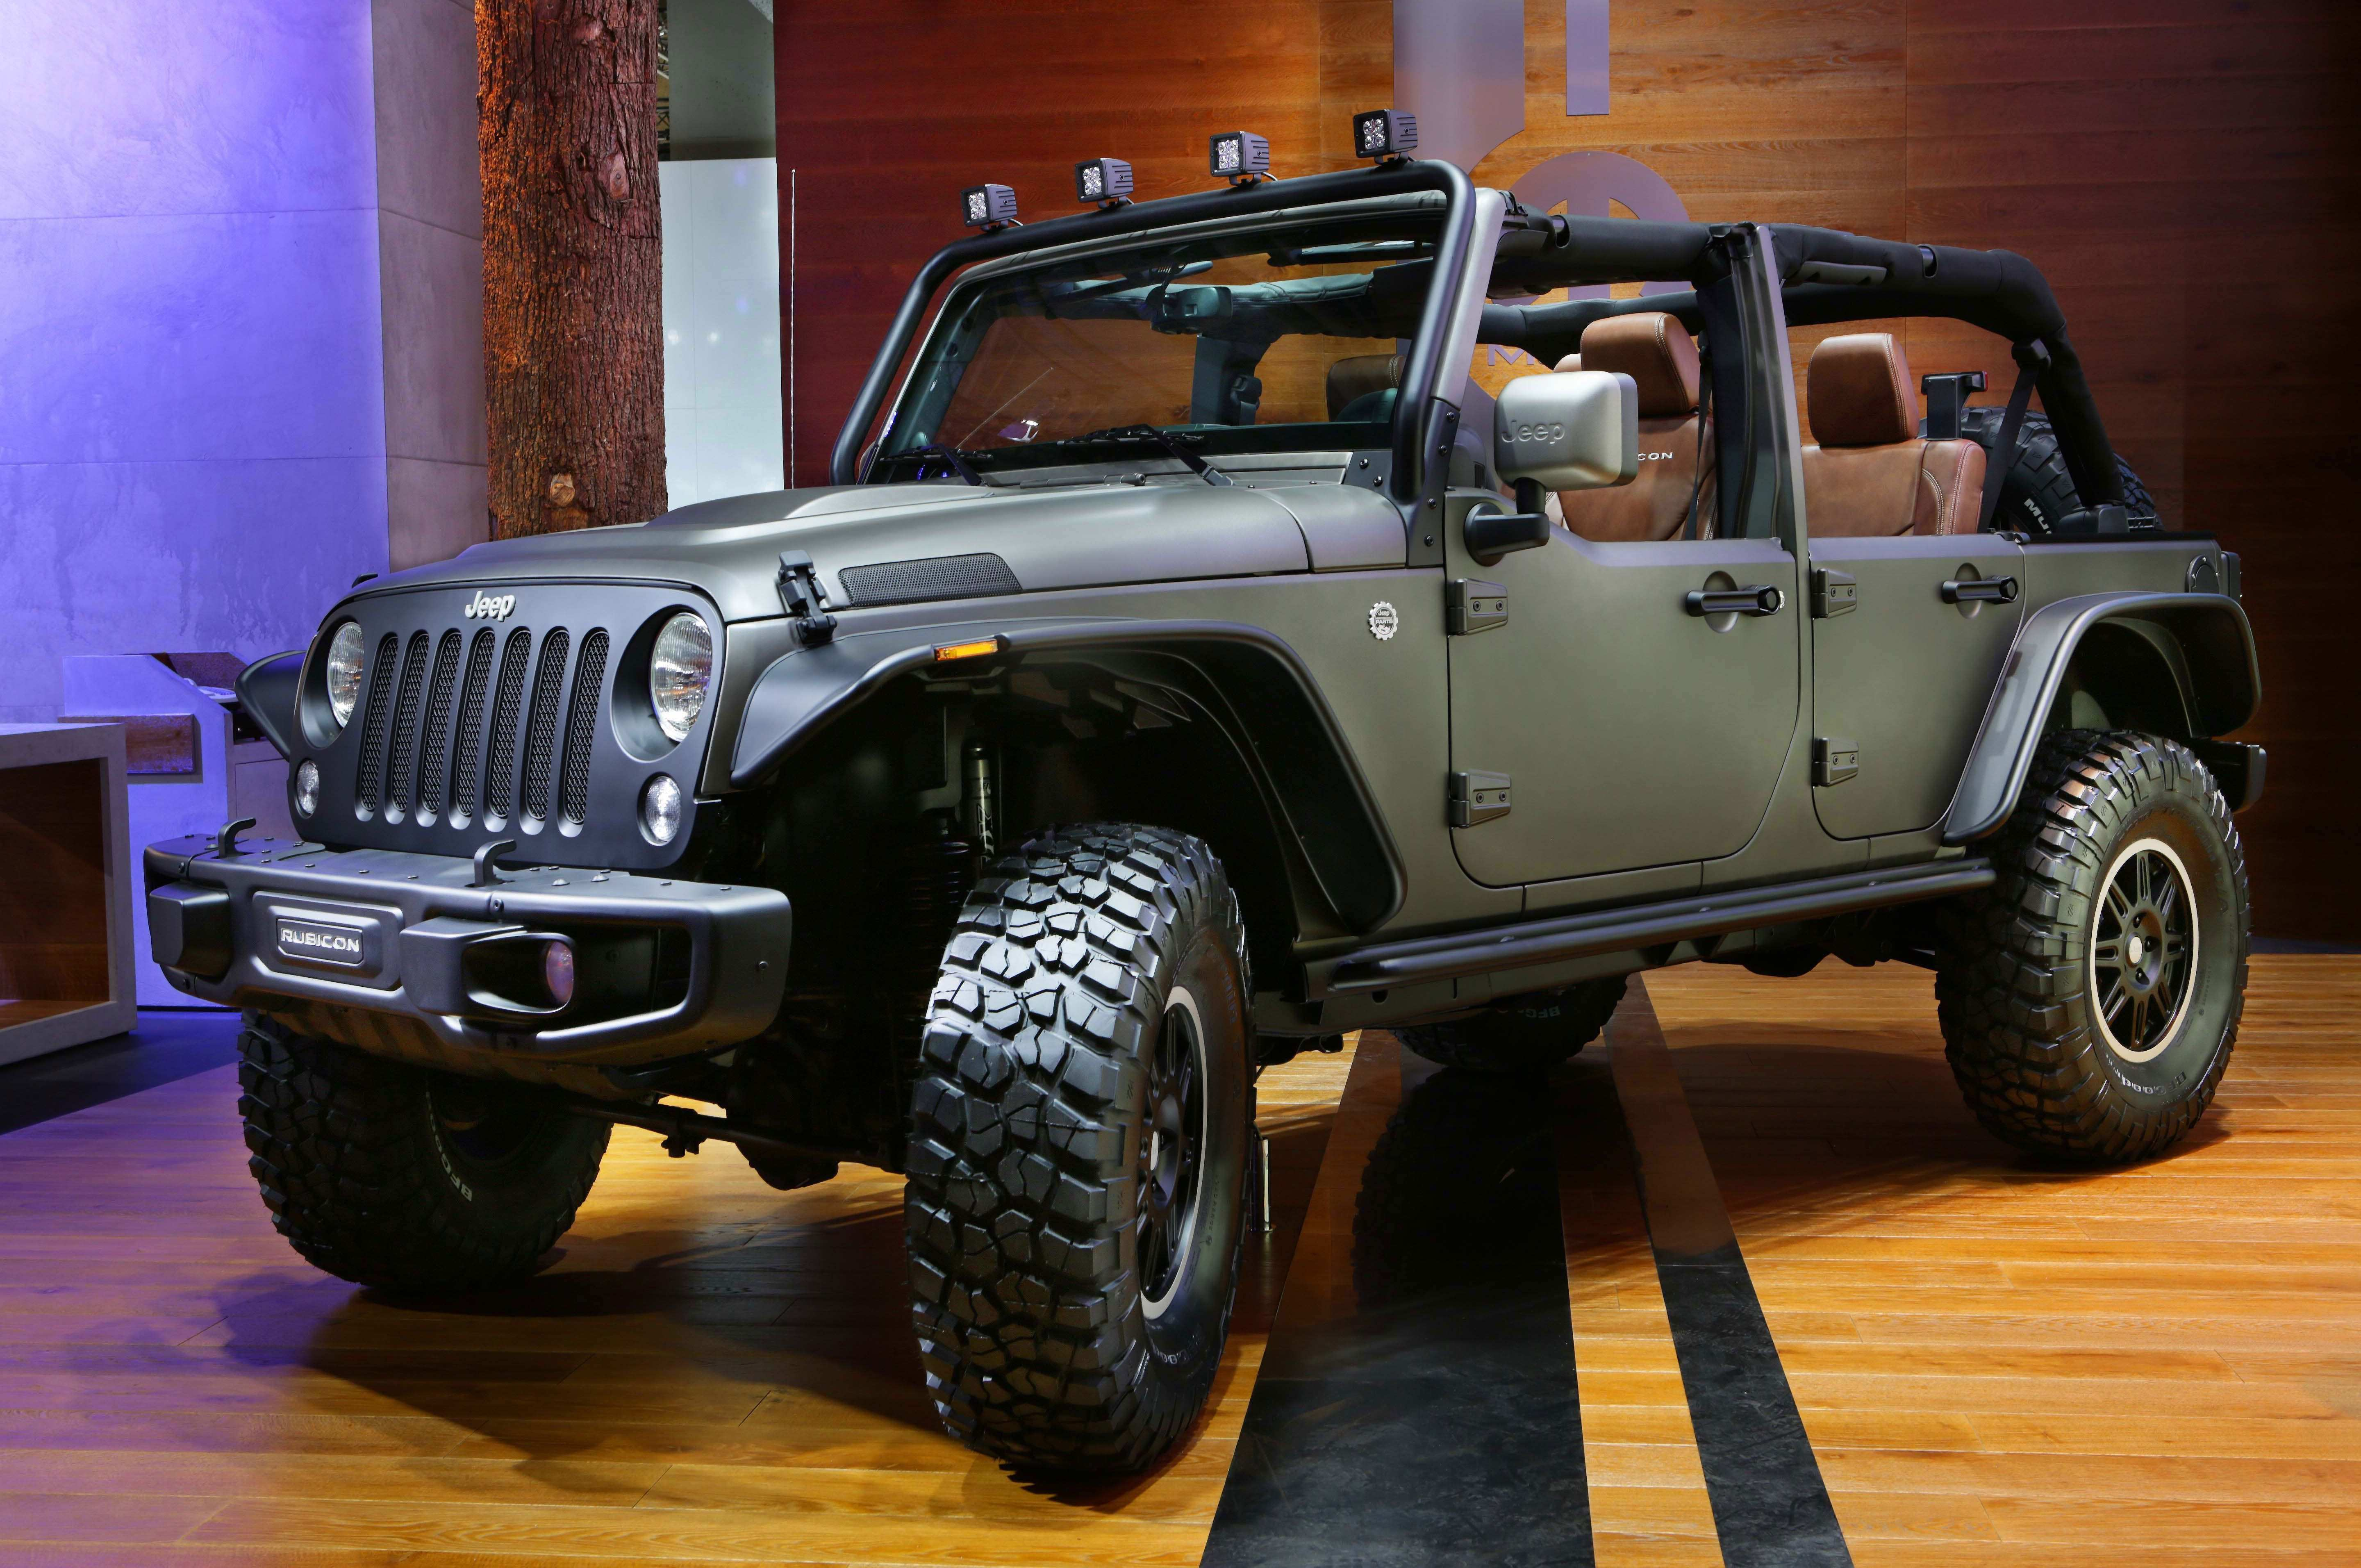 14 Concept of 2019 Jeep Exterior Colors Redesign and Concept by 2019 Jeep Exterior Colors